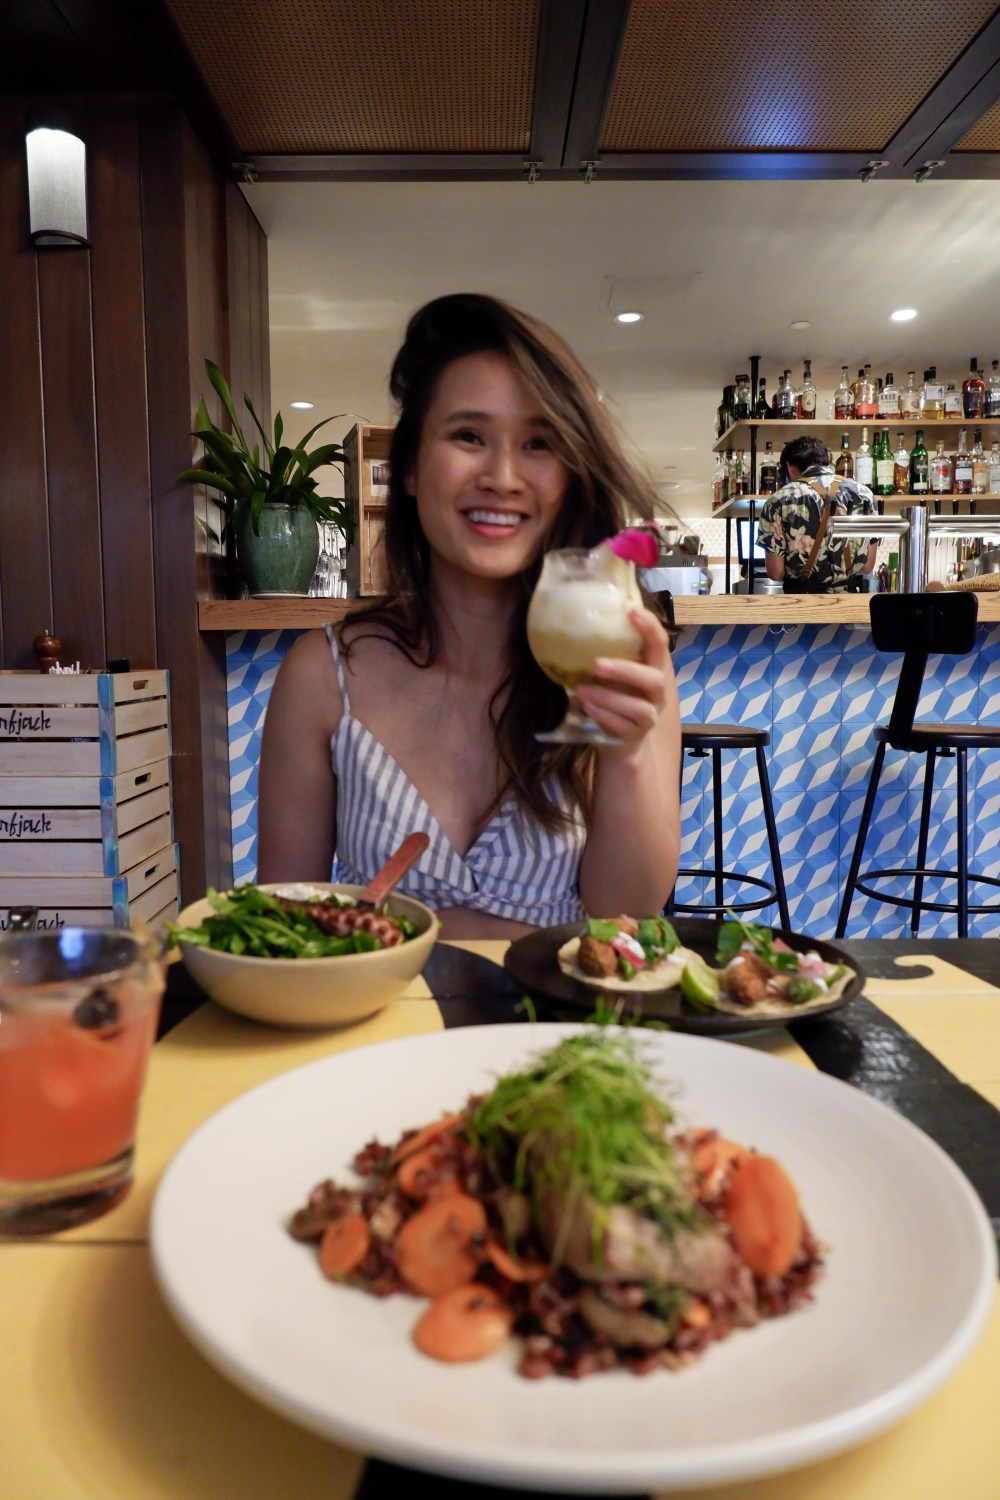 Places to Stay and eat in Oahu, Hawaii: The Surfjack Hotel - Mahina & Sun's seafood restaurant #camandtay #camlee